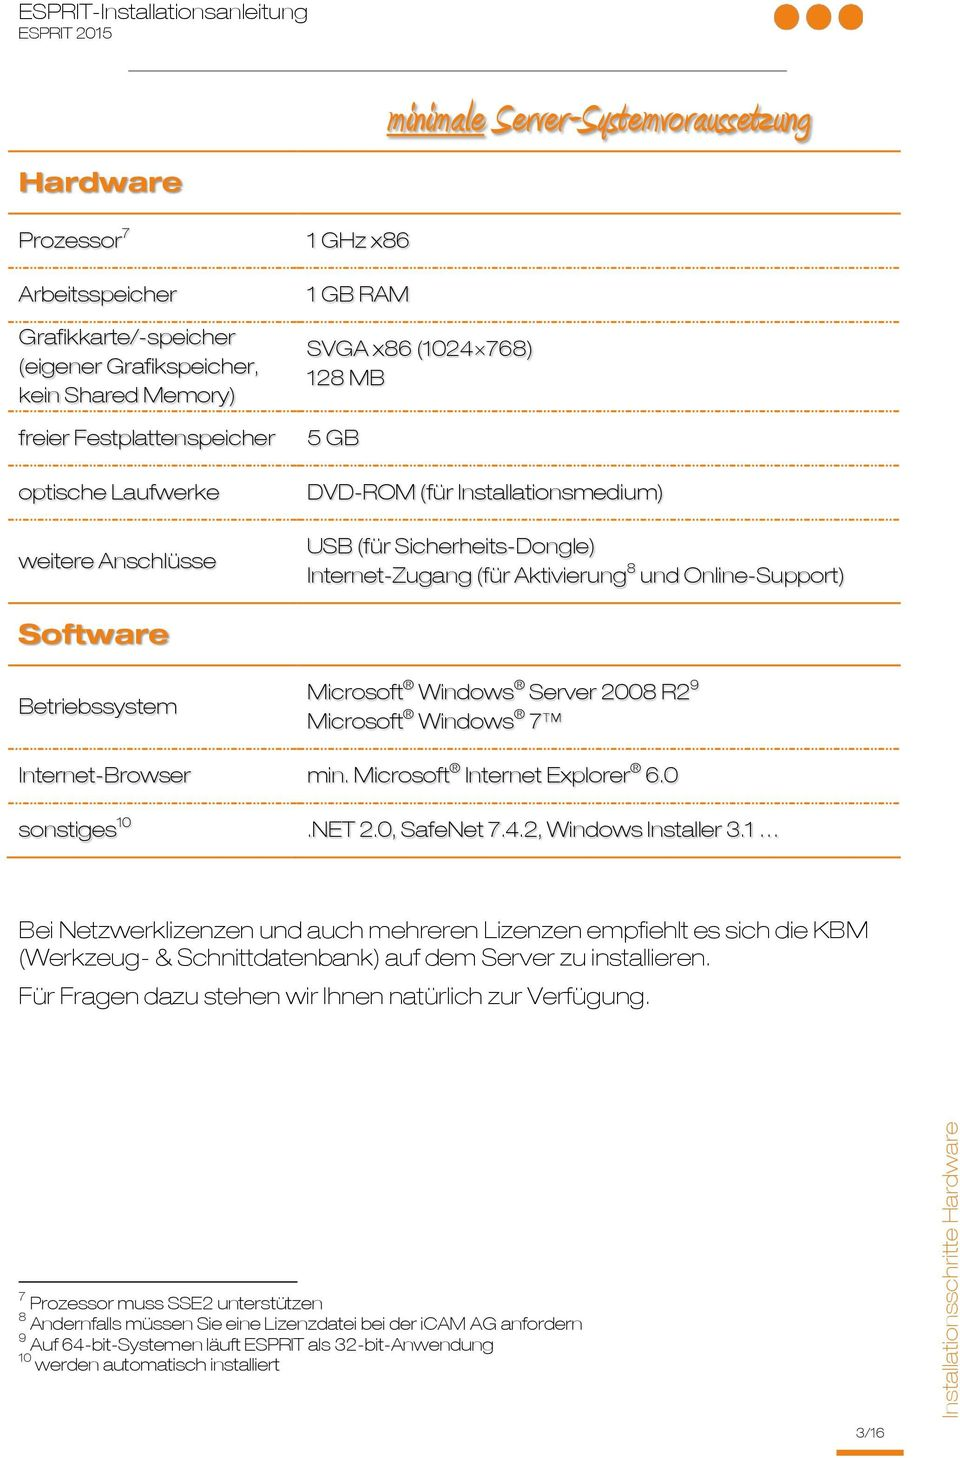 Betriebssystem Microsoft Windows Server 2008 R2 9 Microsoft Windows 7 Internet-Browser min. Microsoft Internet Explorer 6.0 sonstiges 10.NET 2.0, SafeNet 7.4.2, Windows Installer 3.